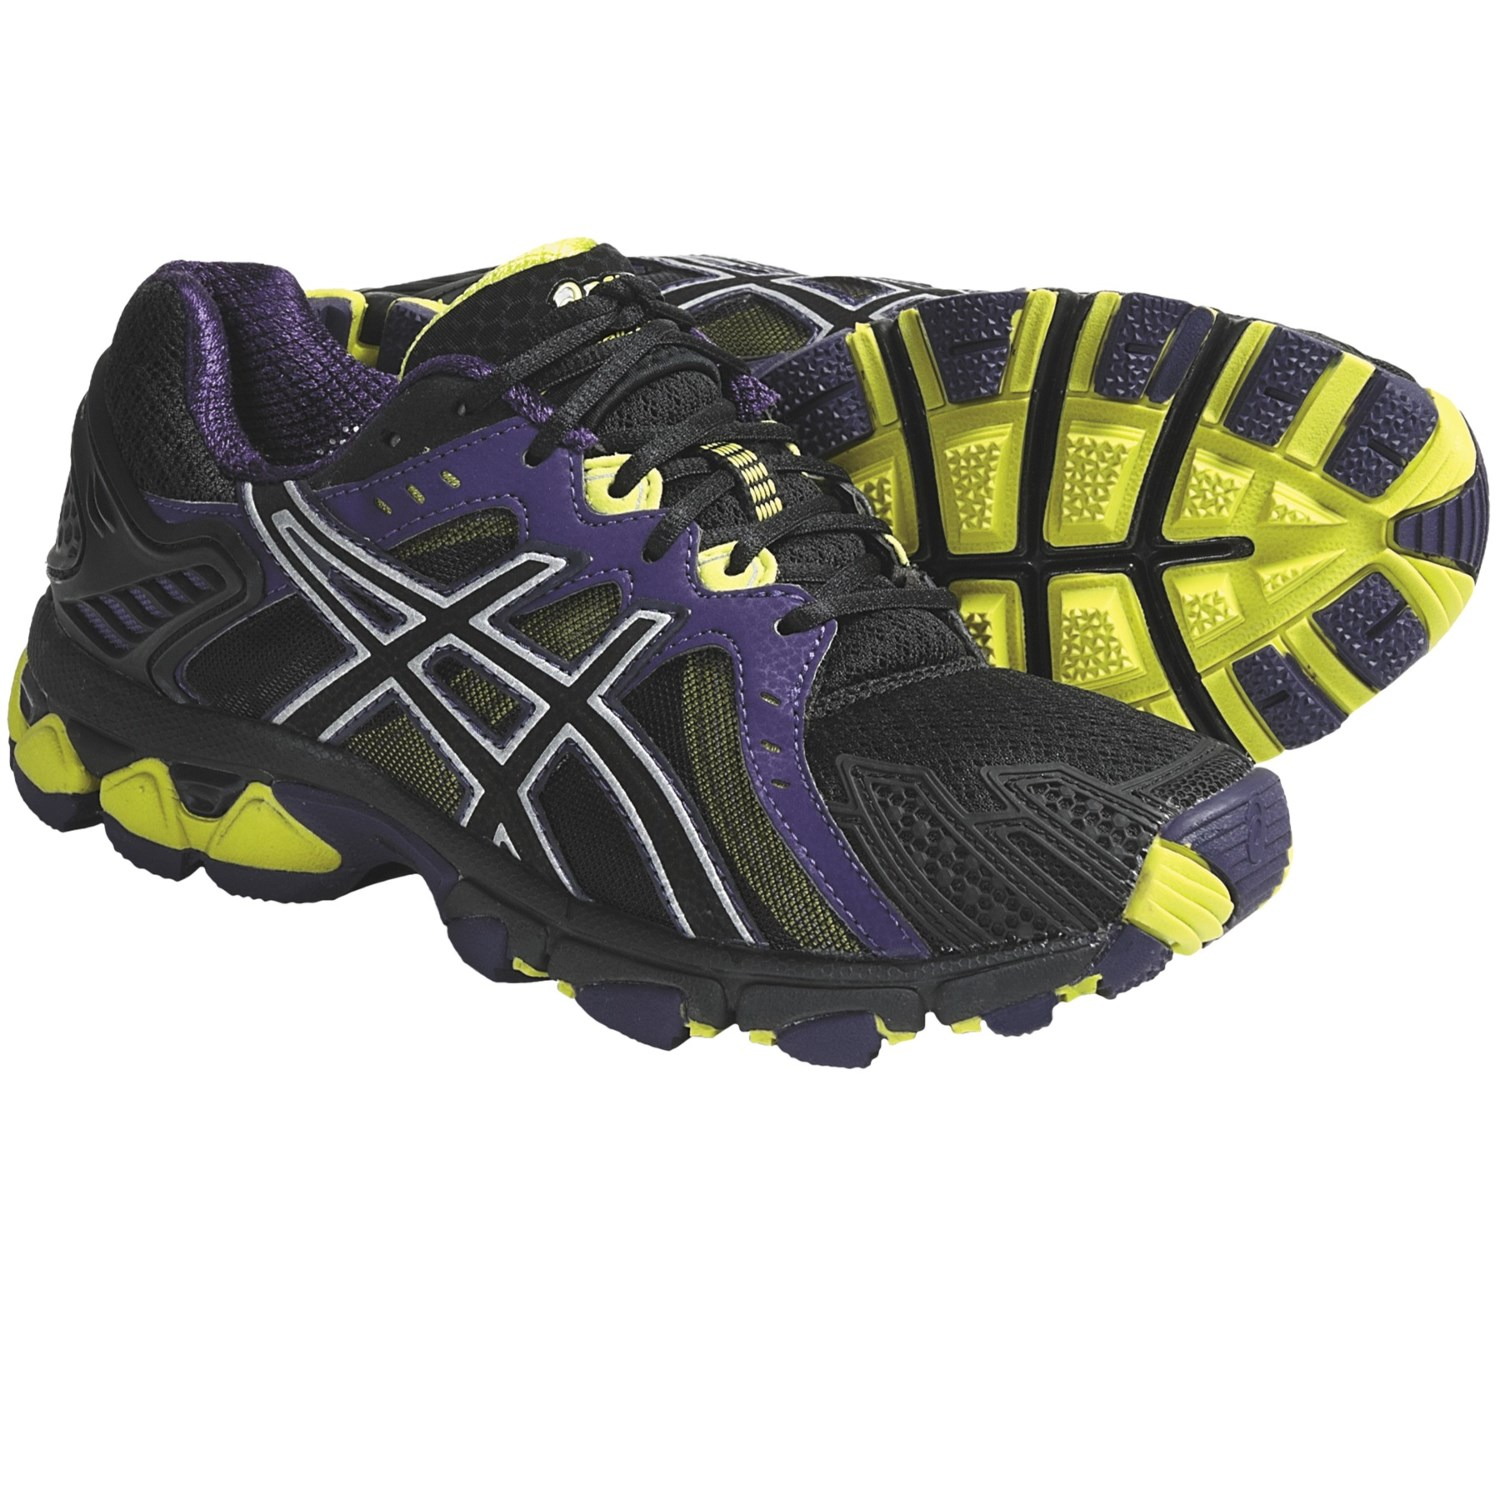 Trail Running Shoes Pronation Control